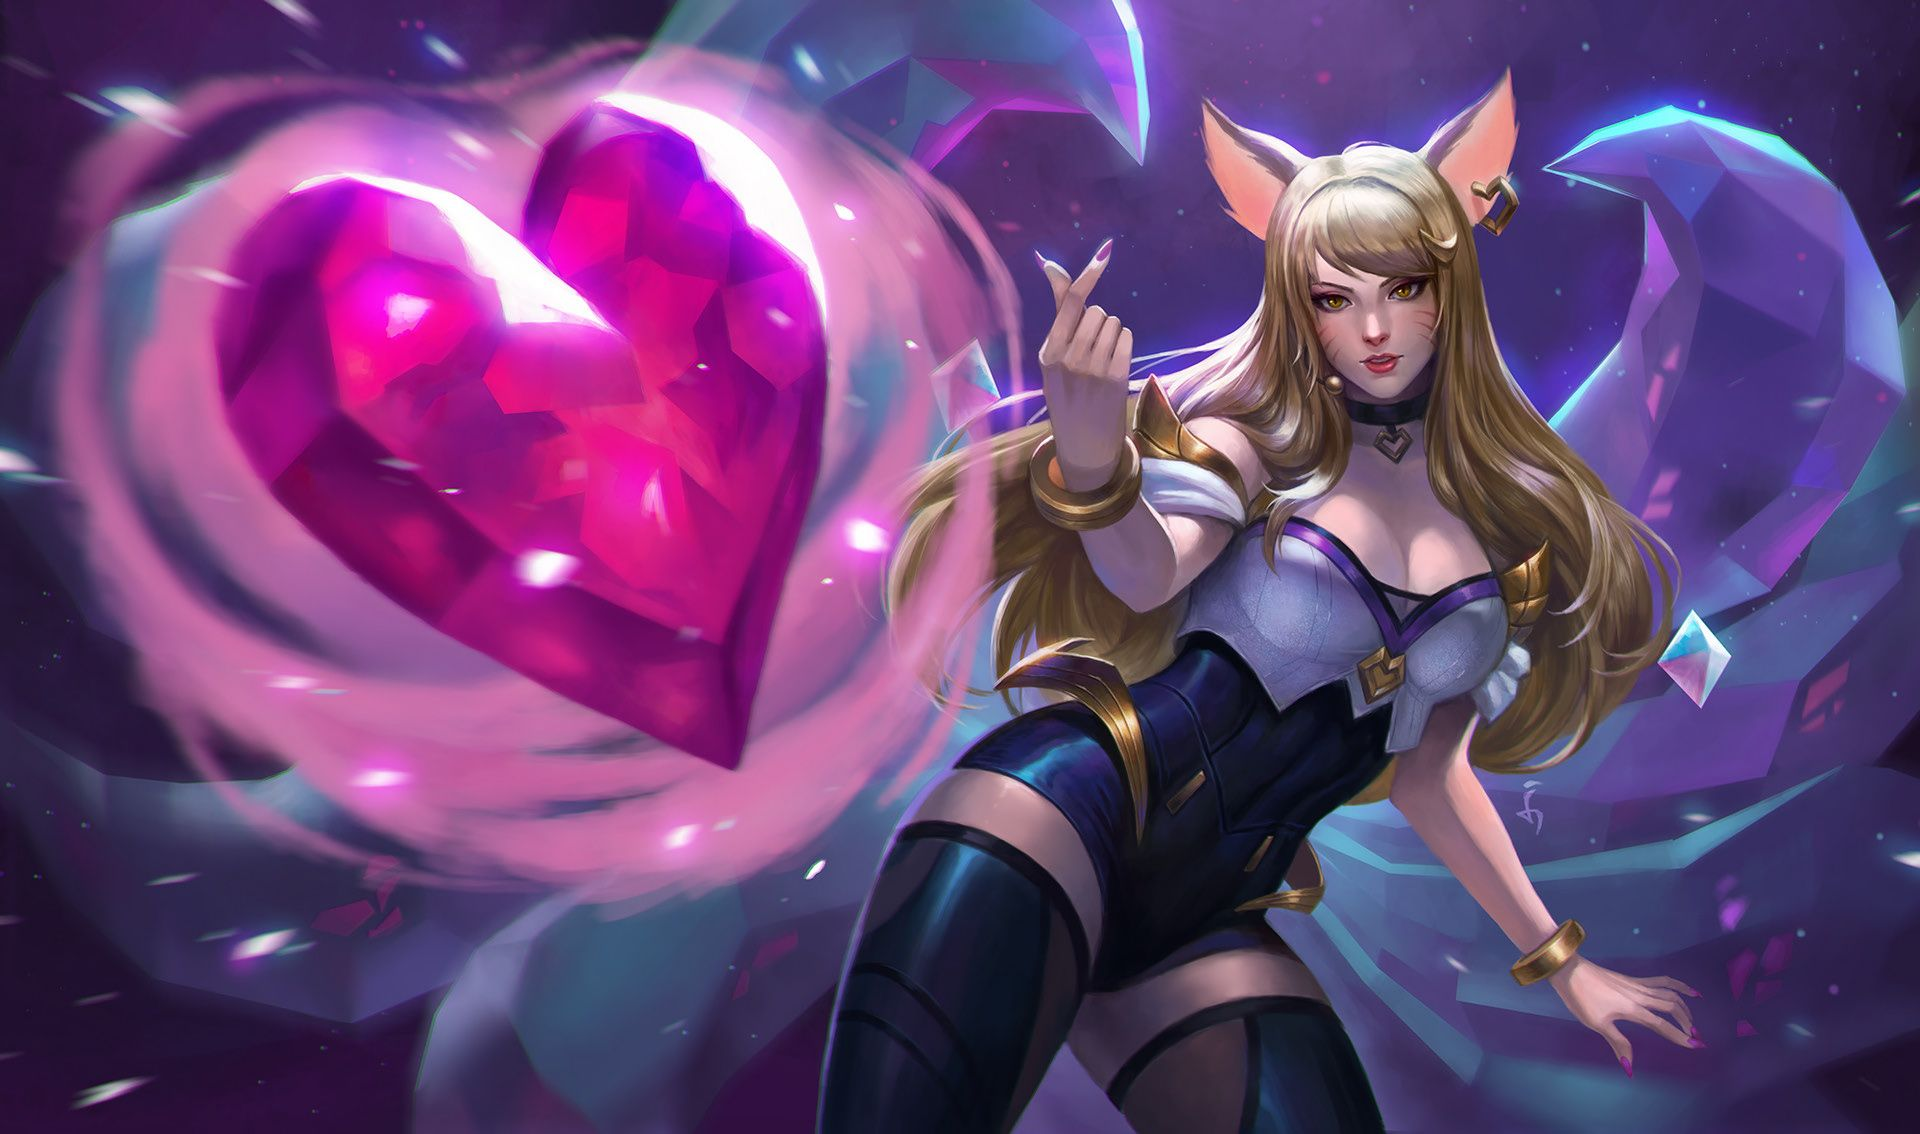 Hd Wallpapers Artworks For League Of Legends Lol League Of